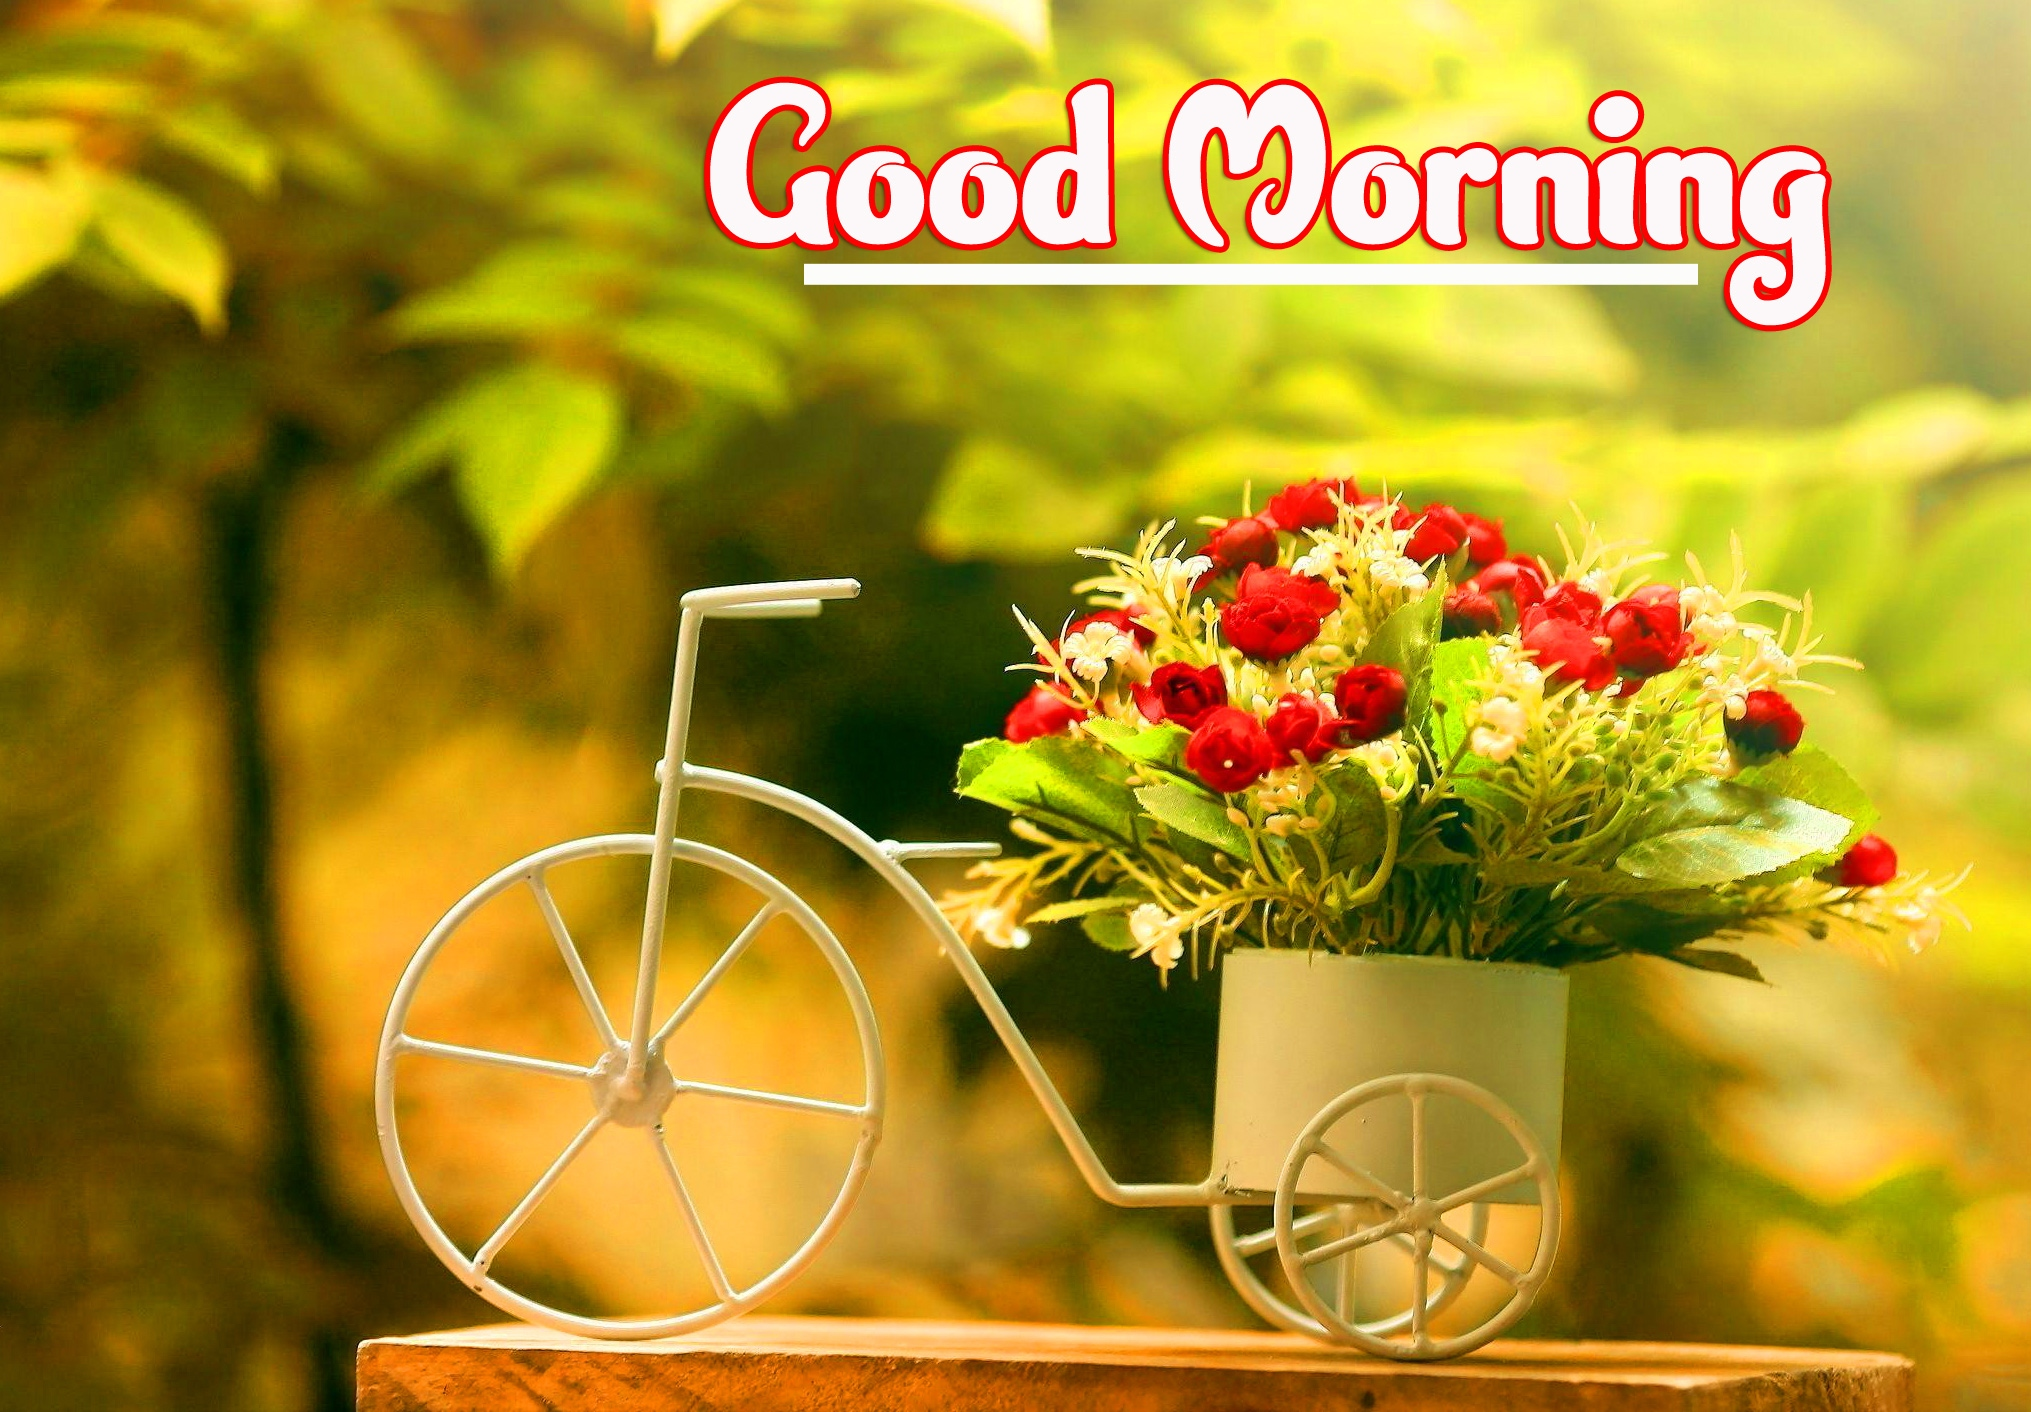 Good Morning Wallpaper Photo Download Free